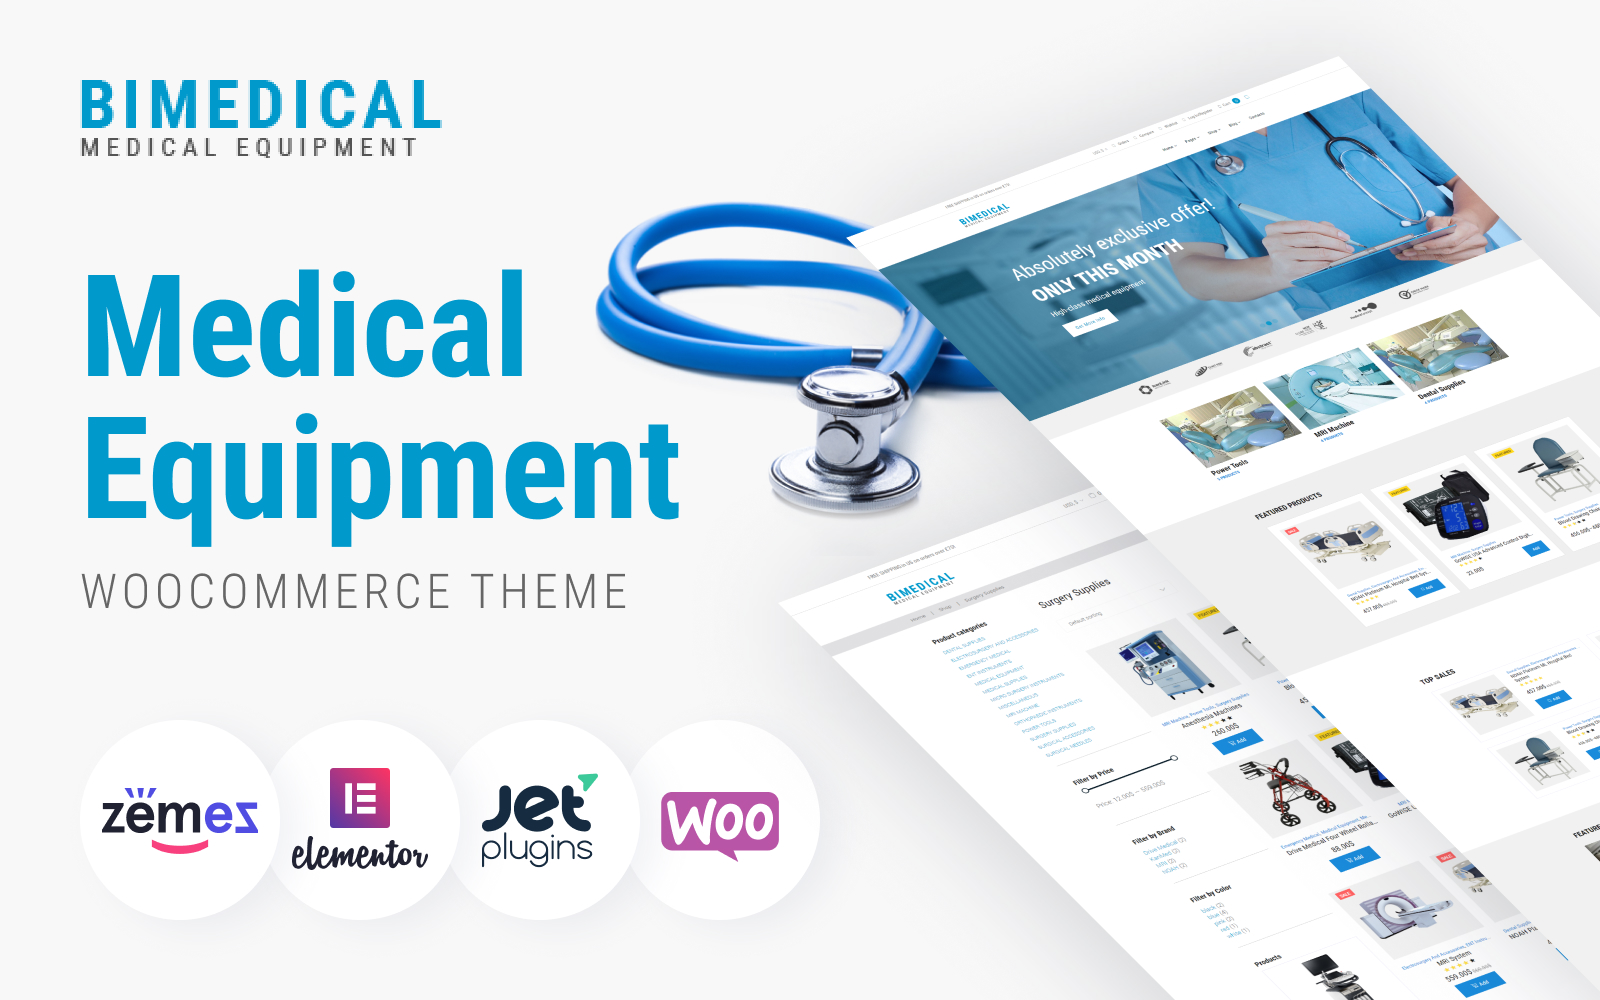 Bimedical- Medical Equipment Responsive Tema WooCommerce №64363